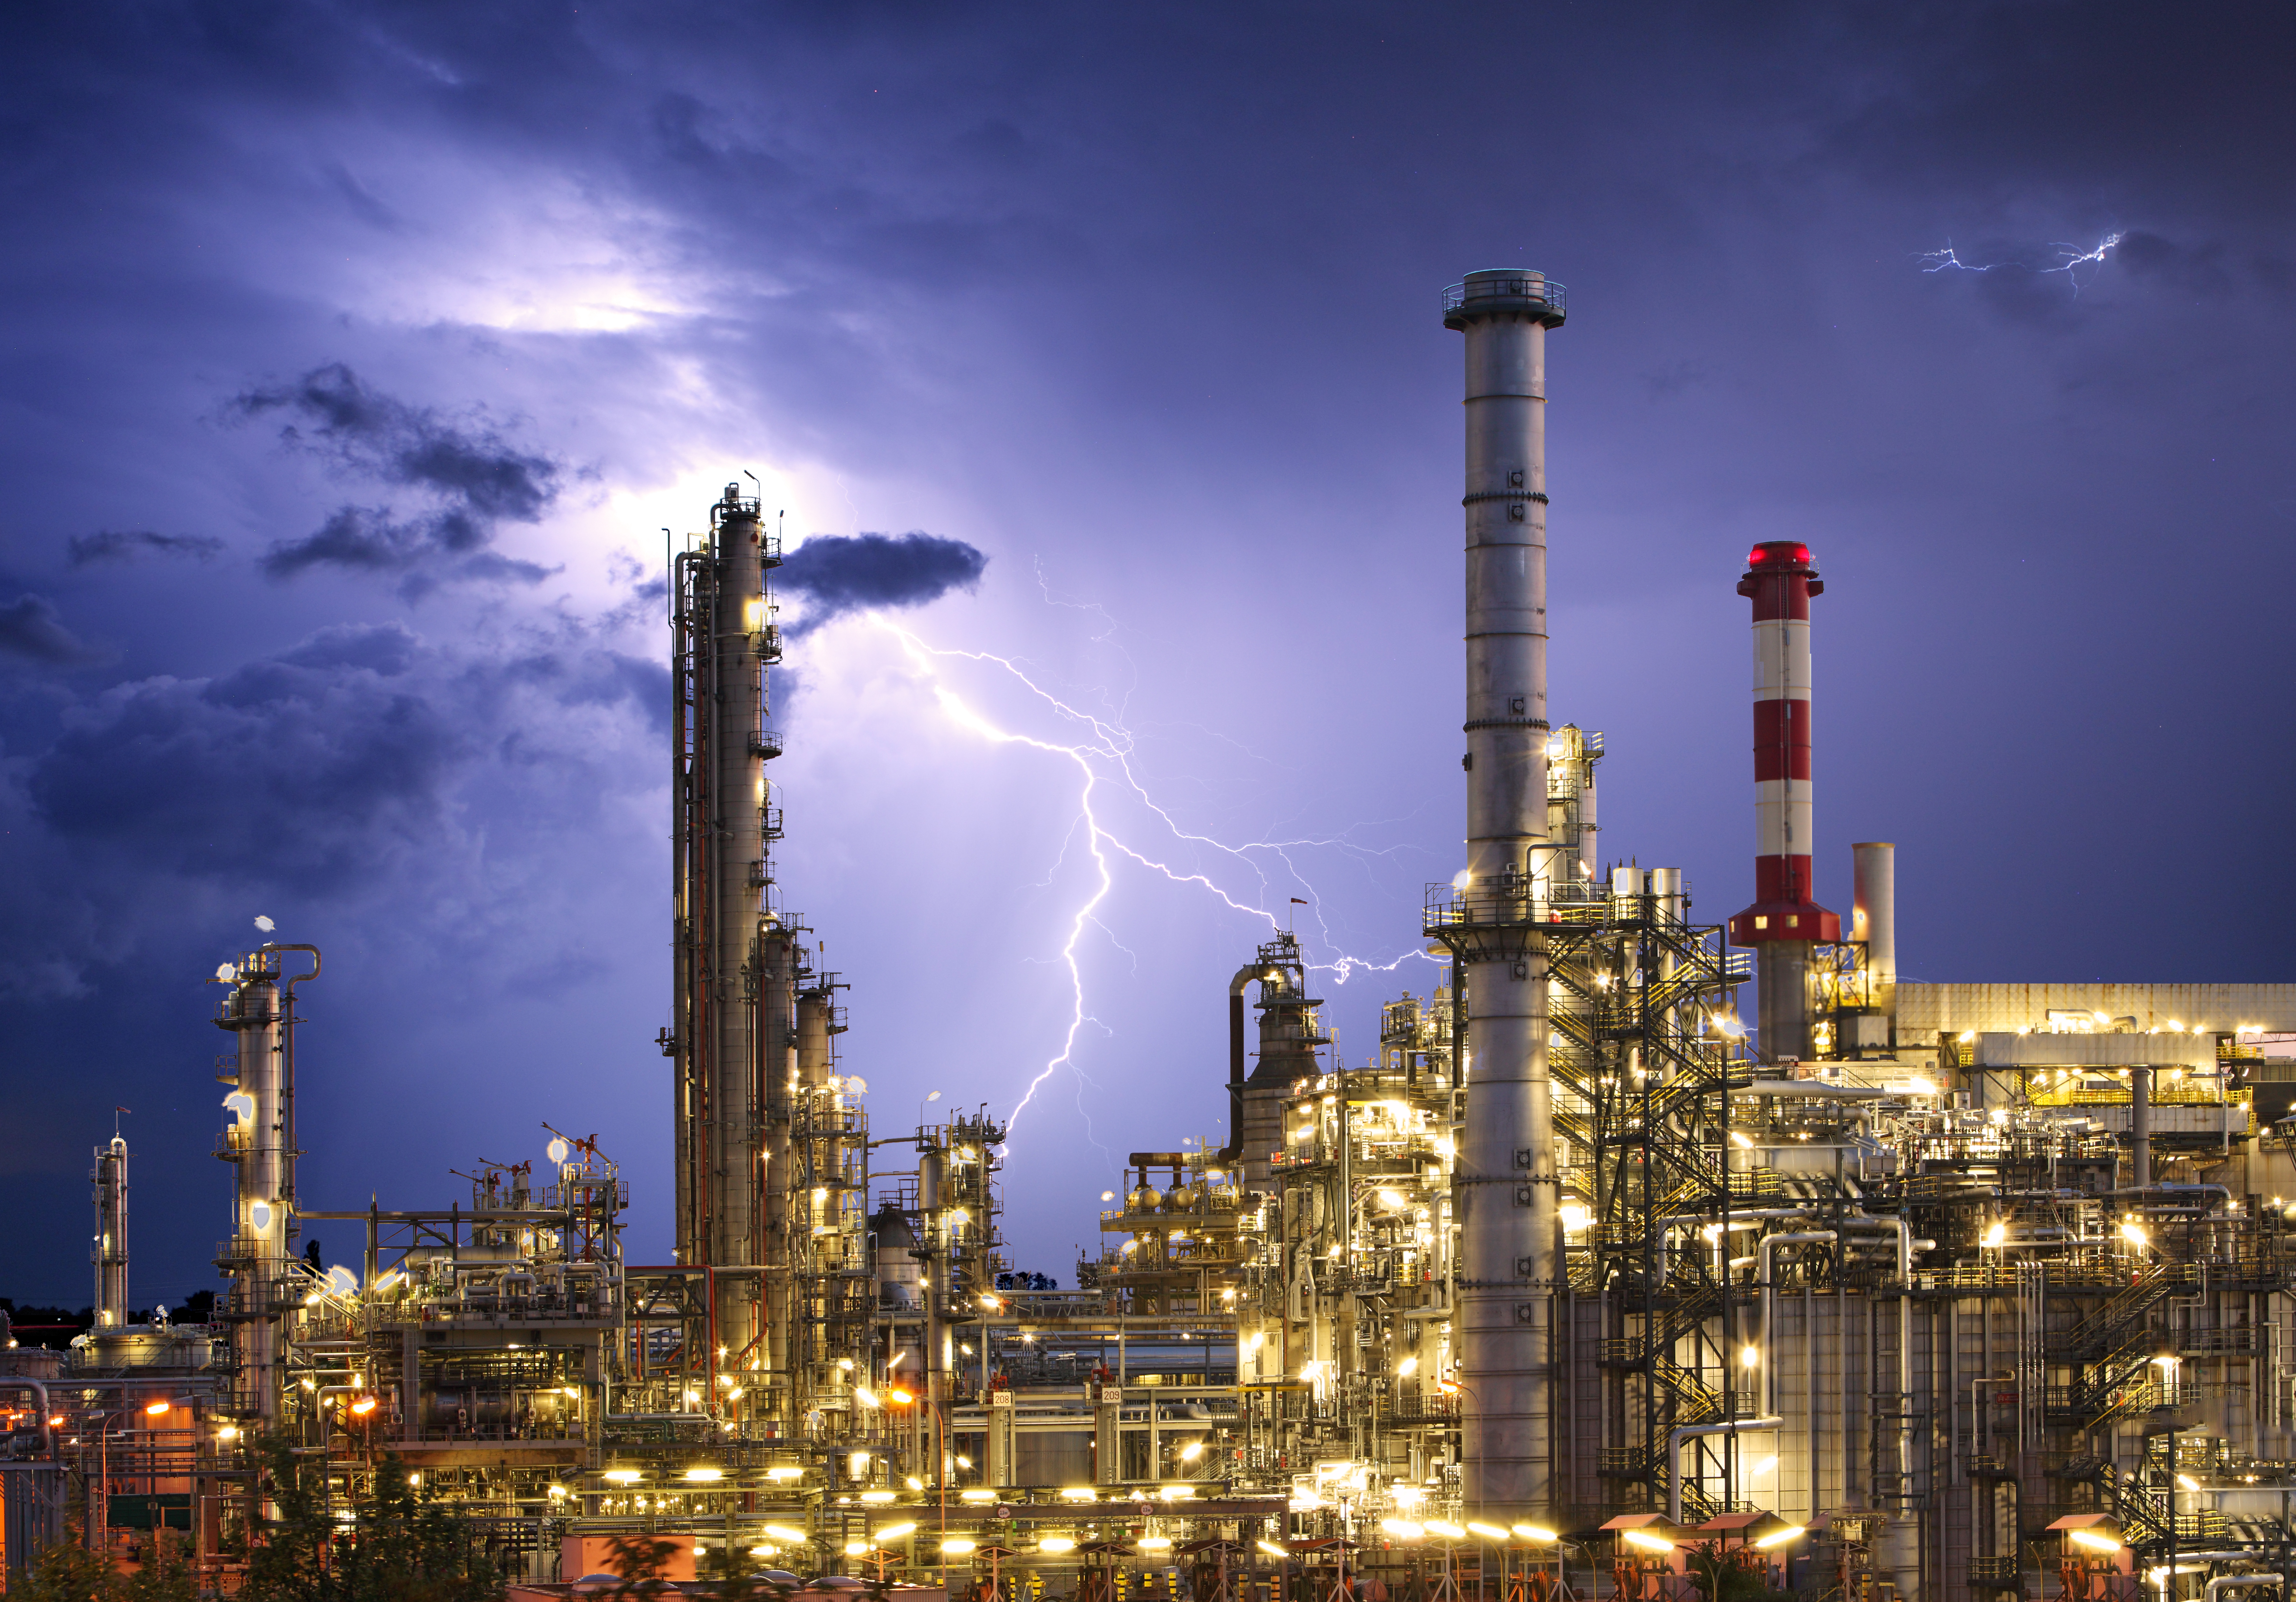 Oil and Gas Plant Lightning2